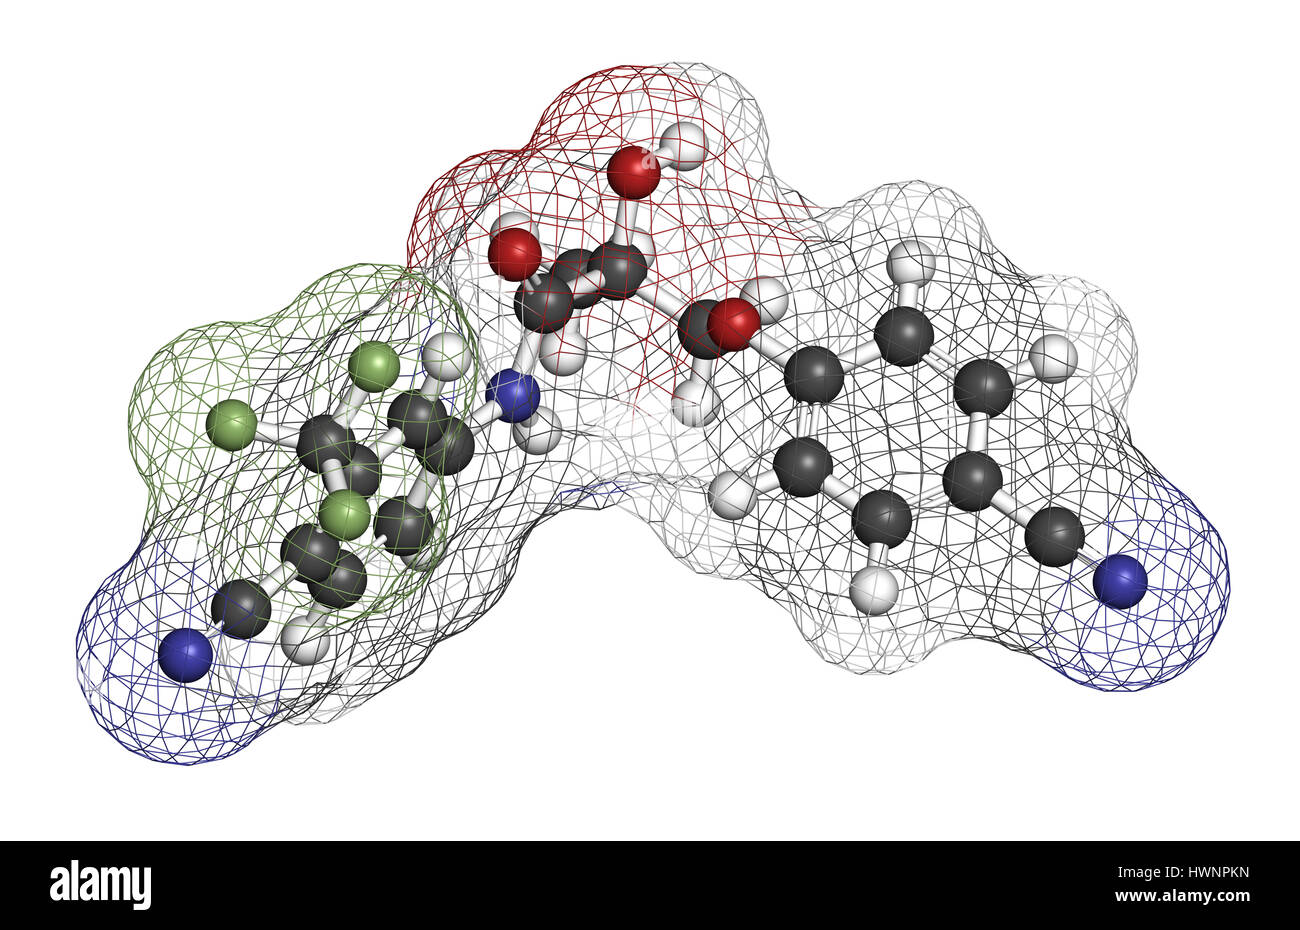 Enobosarm drug molecule. Selective androgen receptor modulator (SARM) that is also used in sports doping. 3D rendering. - Stock Image